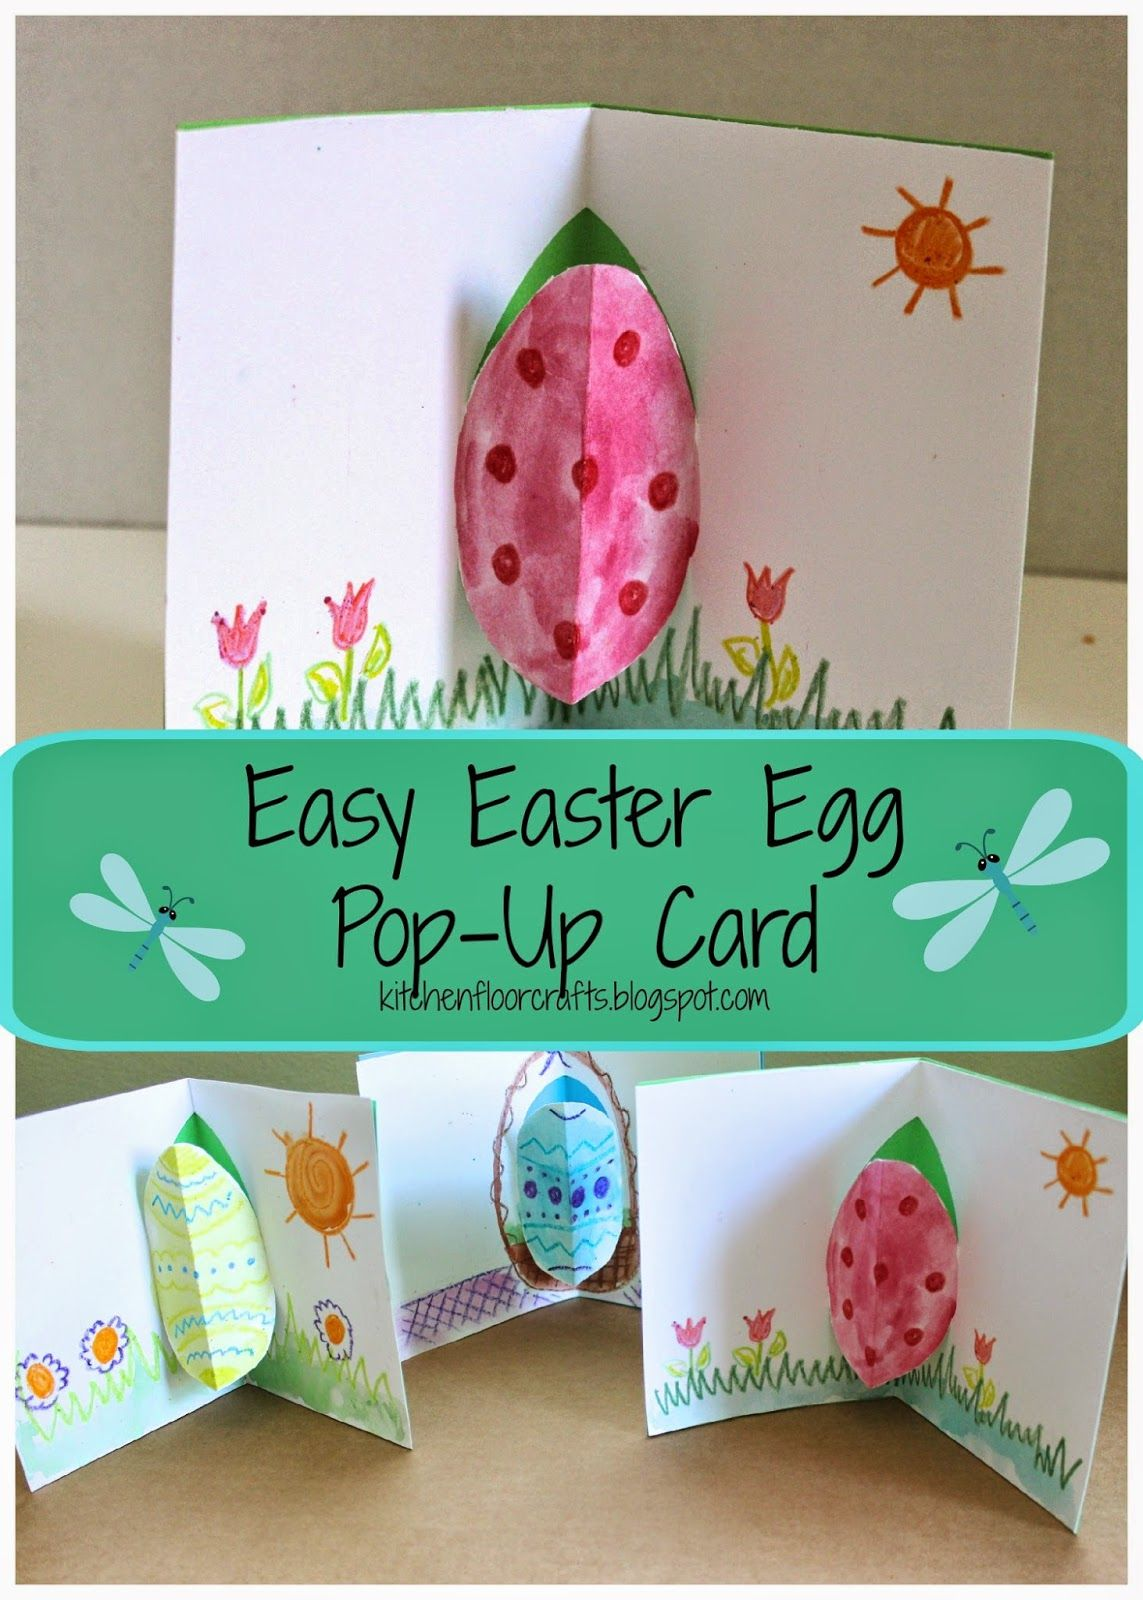 Easy Easter Egg Pop Up Card Easter Cards Handmade Diy Easter Cards Holiday Crafts For Kids